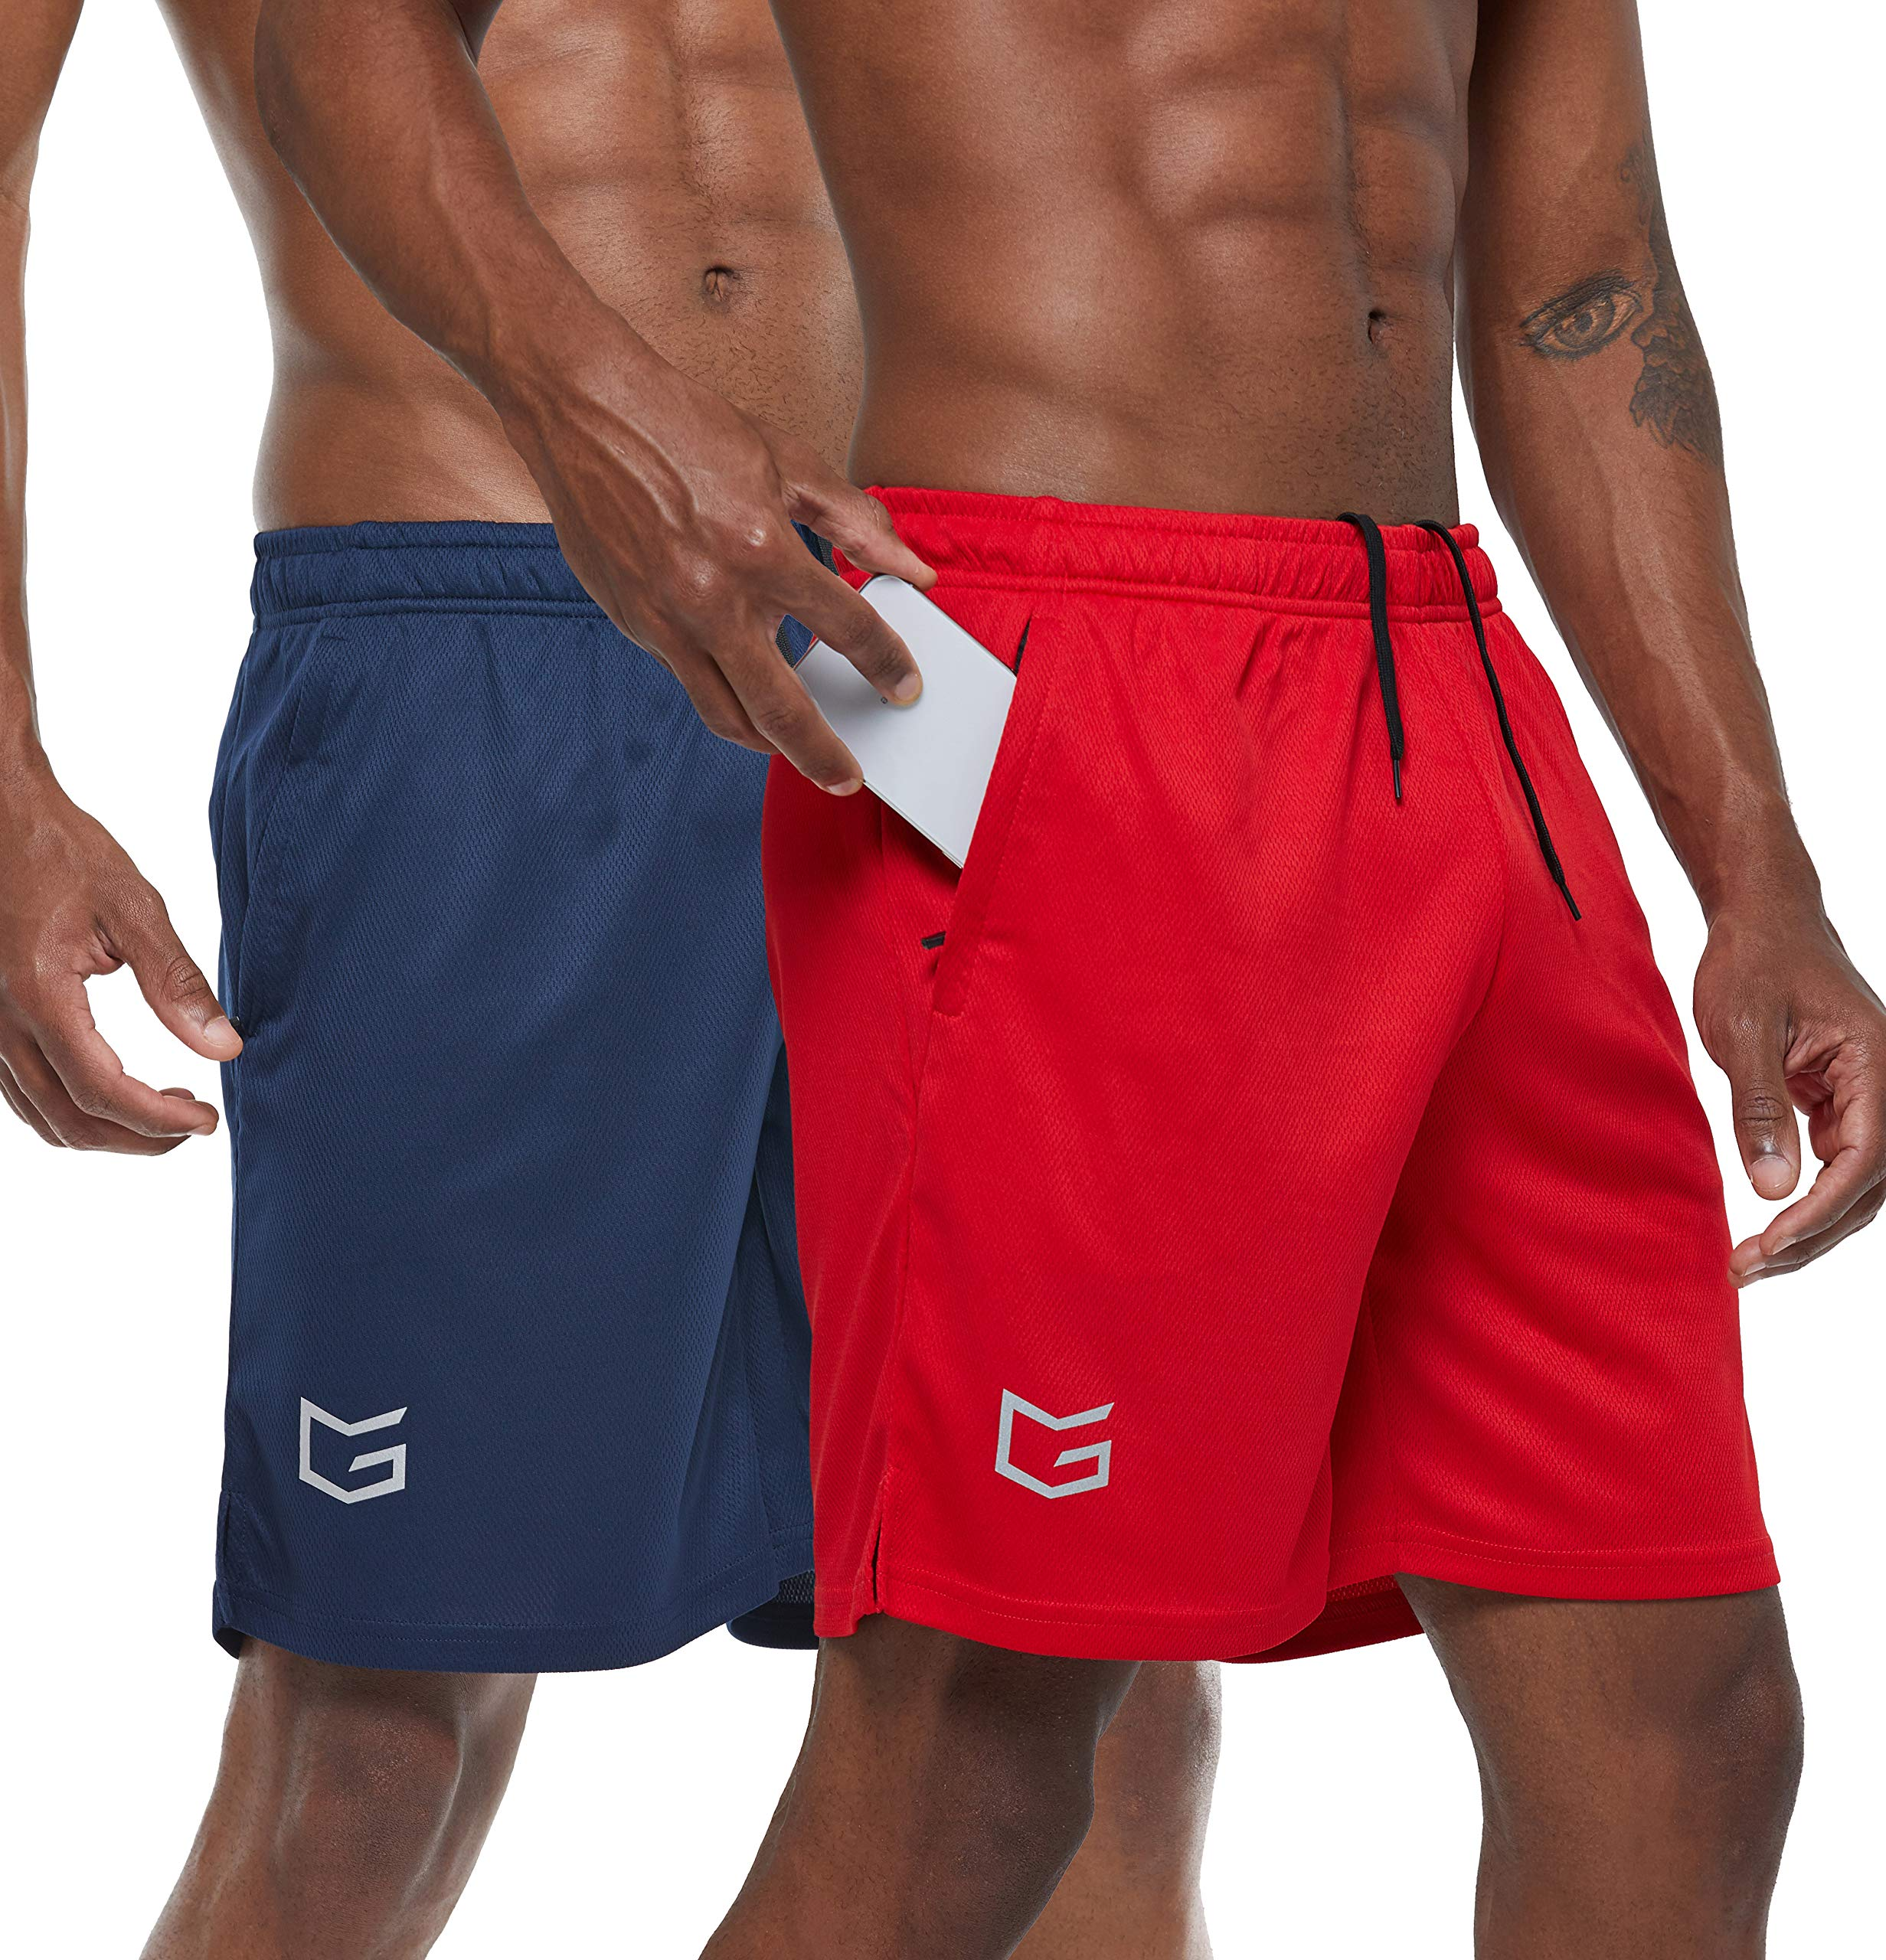 G Gradual Men's 7'' Workout Running Shorts Quick Dry Lightweight Gym Shorts with Zip Pockets (Navy Blue/Red, X-Large) by G Gradual